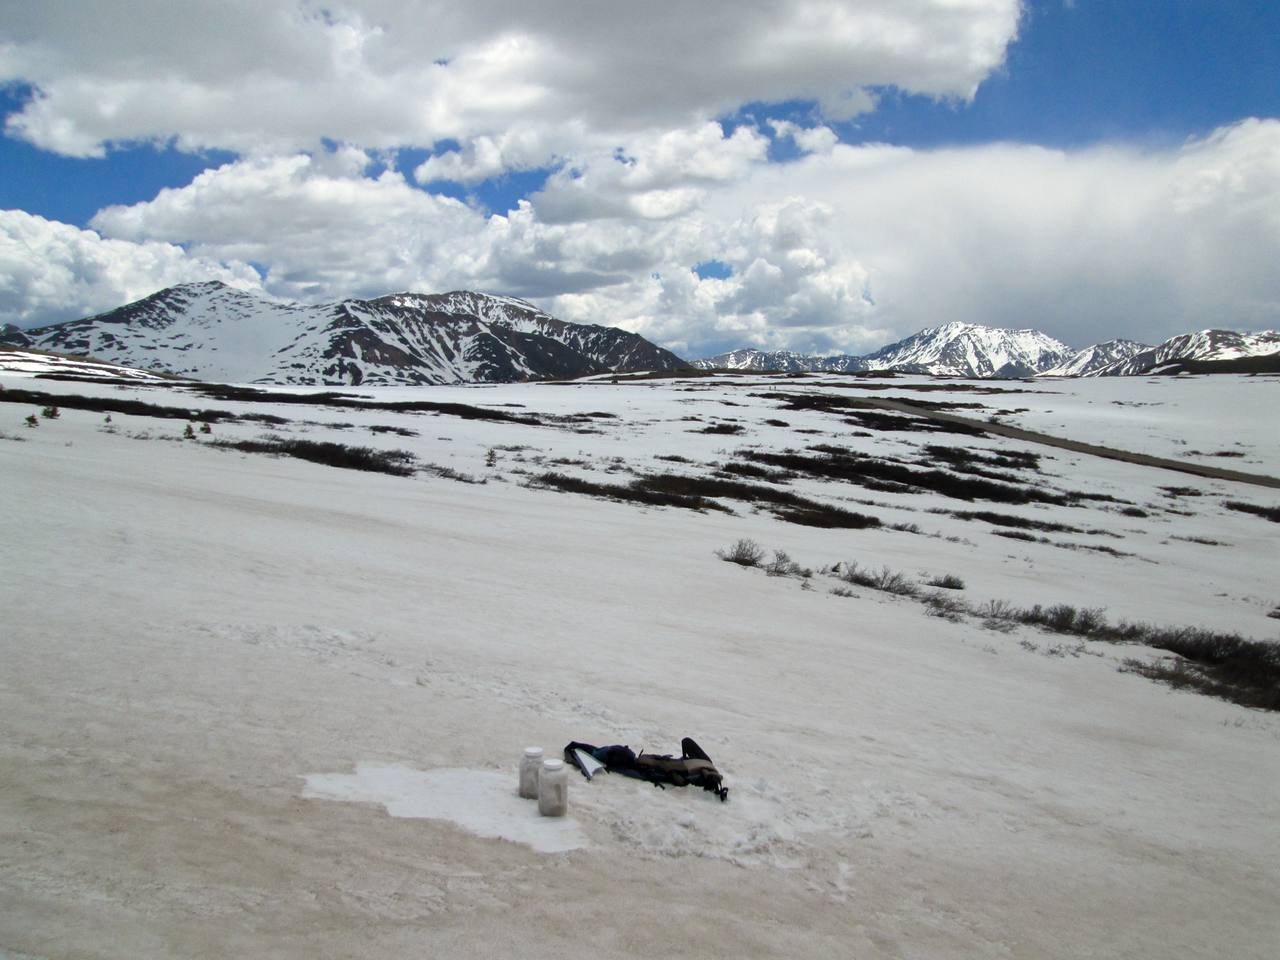 Shallow snowcover on Independence Pass, on June 15, 2015 was rapidly melting and exposing willows and bare ground.  Solar radiation absorbed by these 'dark elements' and then re-emitted as thermal (longwave) energy rapidly accelerate snowmelt around their perimeters.  The summit of the Pass is seen in the middle distance, with sunlit La Plata Peak (14,361') in the far distance, on the right.